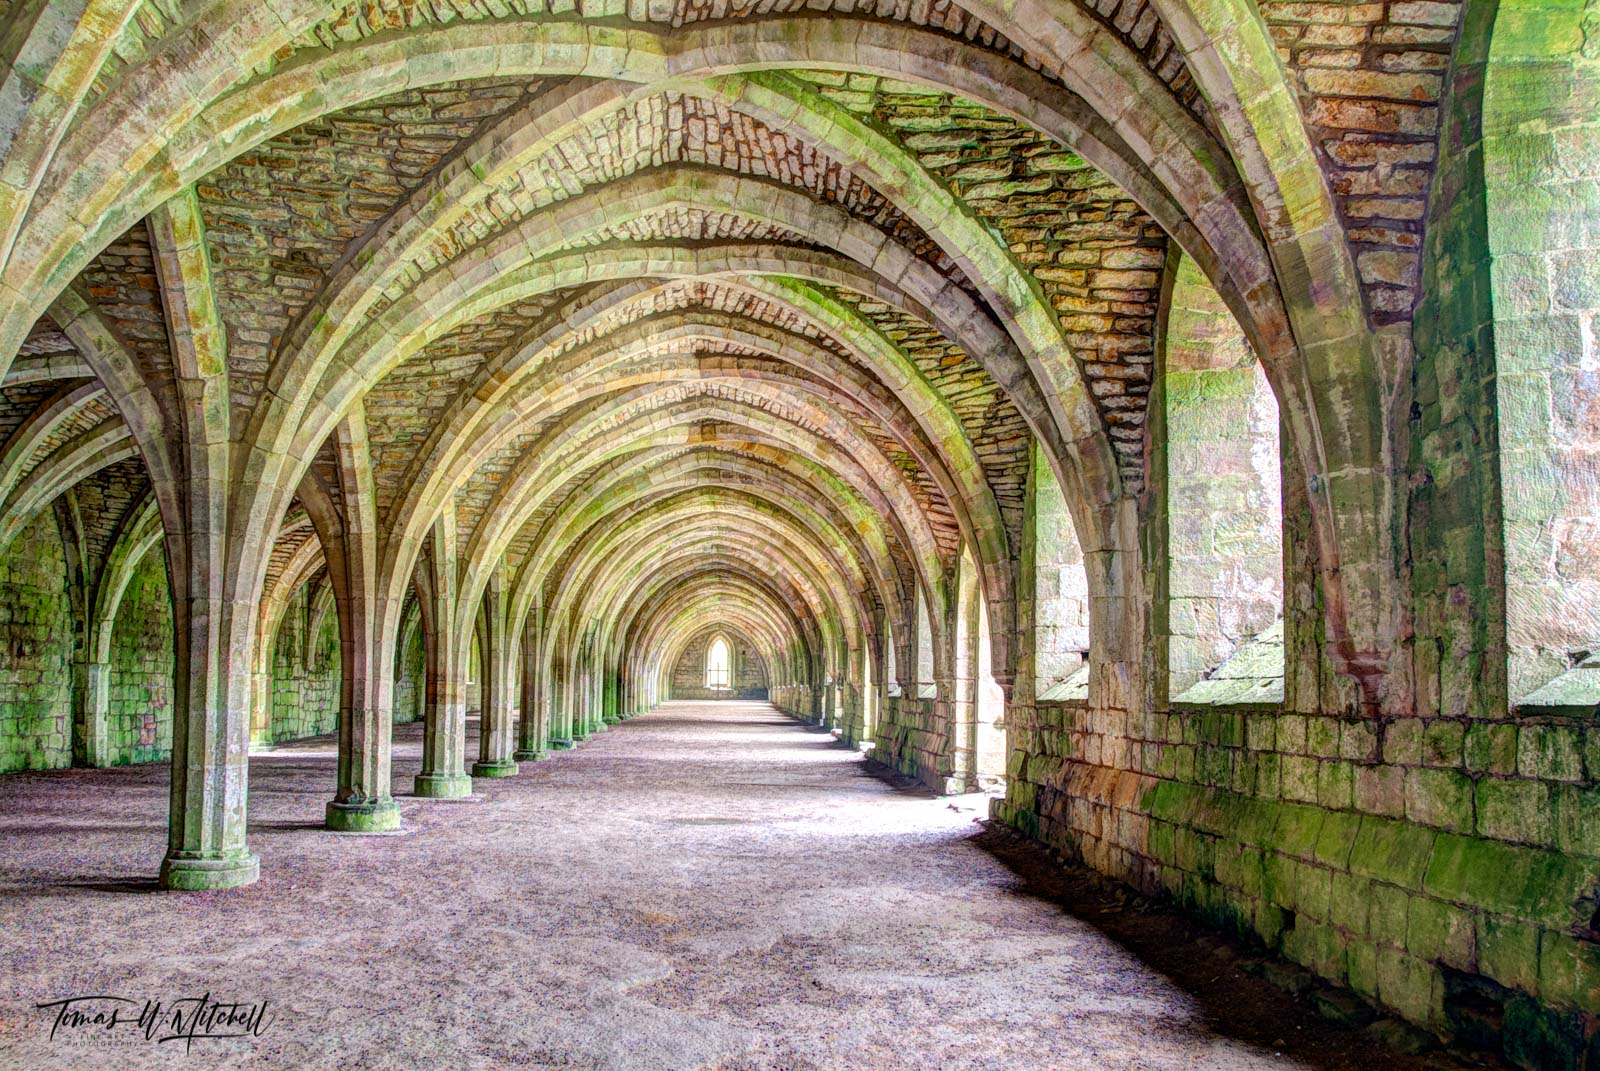 limited edition, museum grade, fine art, prints, fountains abbey, england, cellarium, green, stonework, vaulted arches, abbey, photograph, color, rock, moss, fantasy, photo